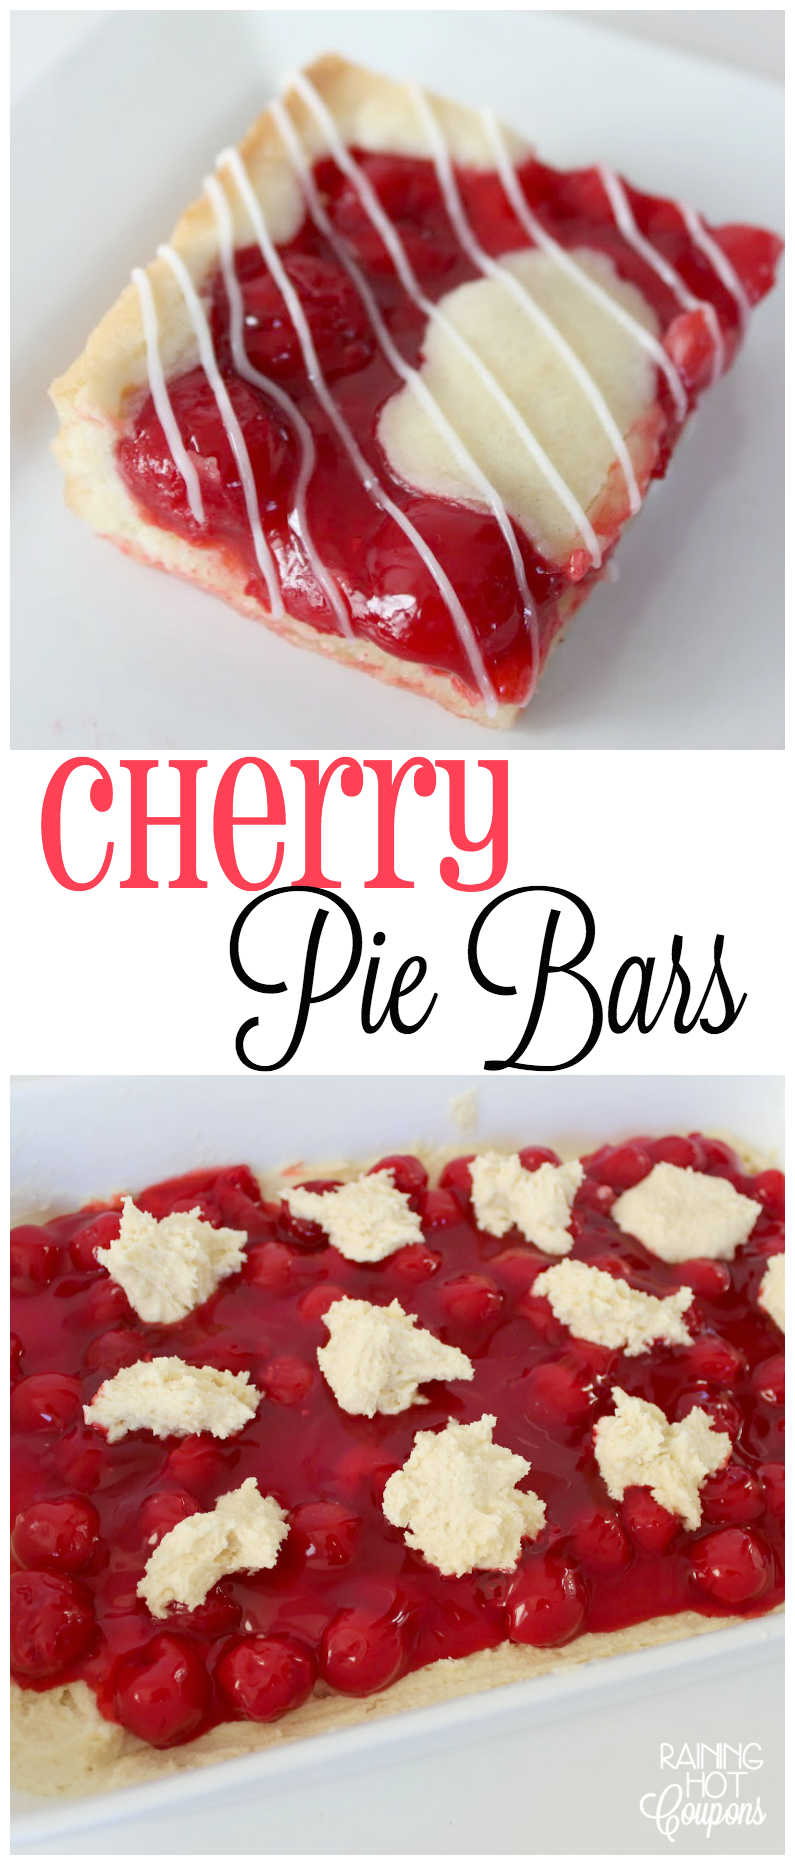 cherry pie bars collage